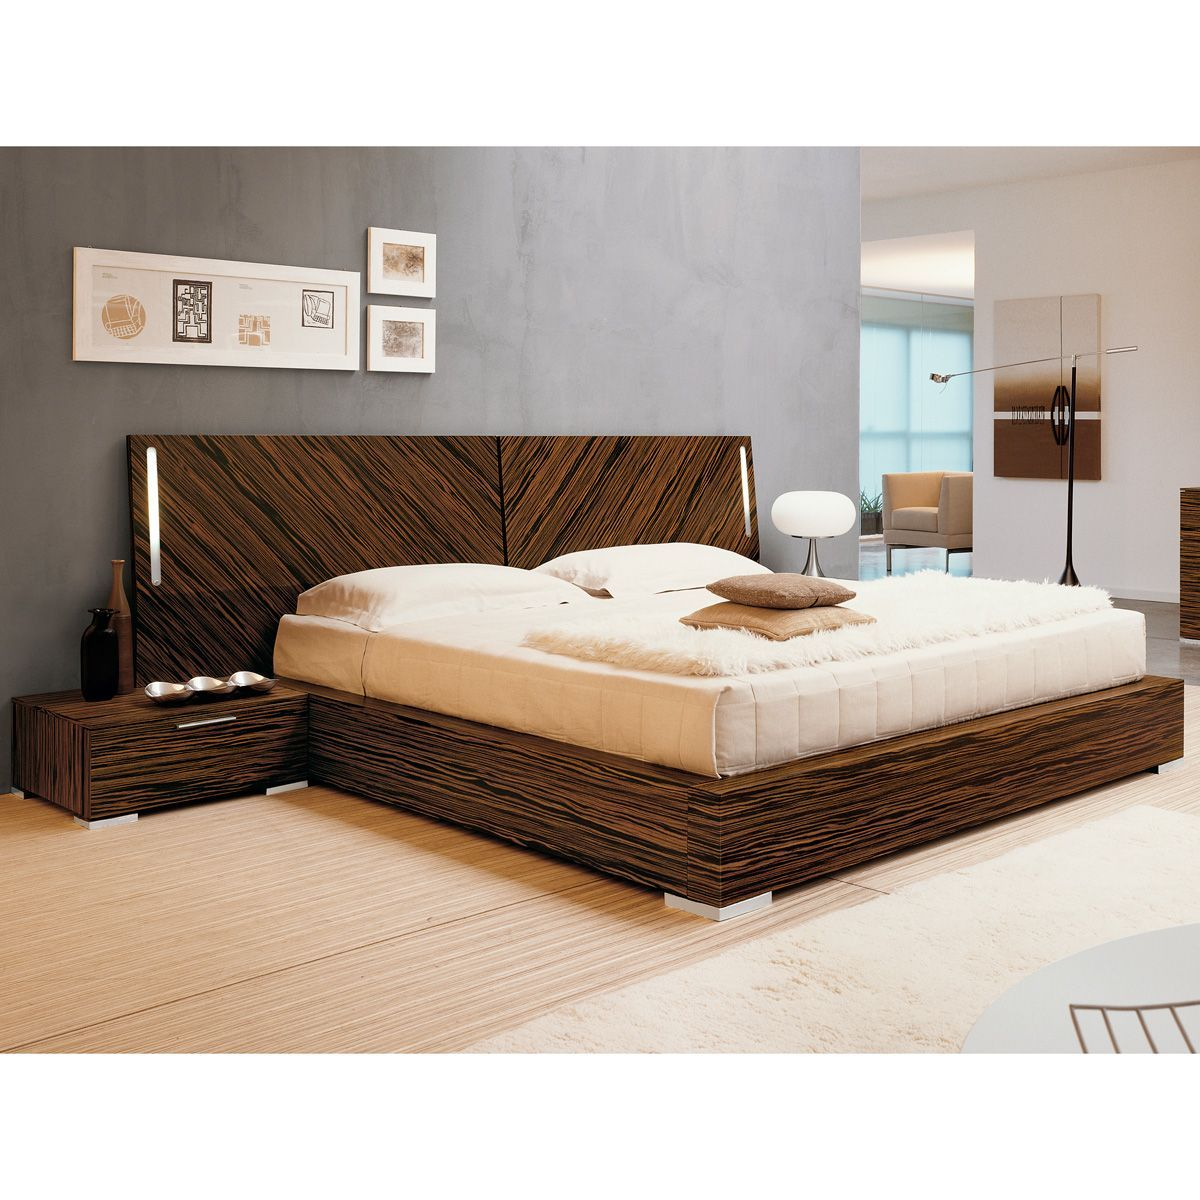 Webb Bed with Nightstands Bedroom sets furniture queen